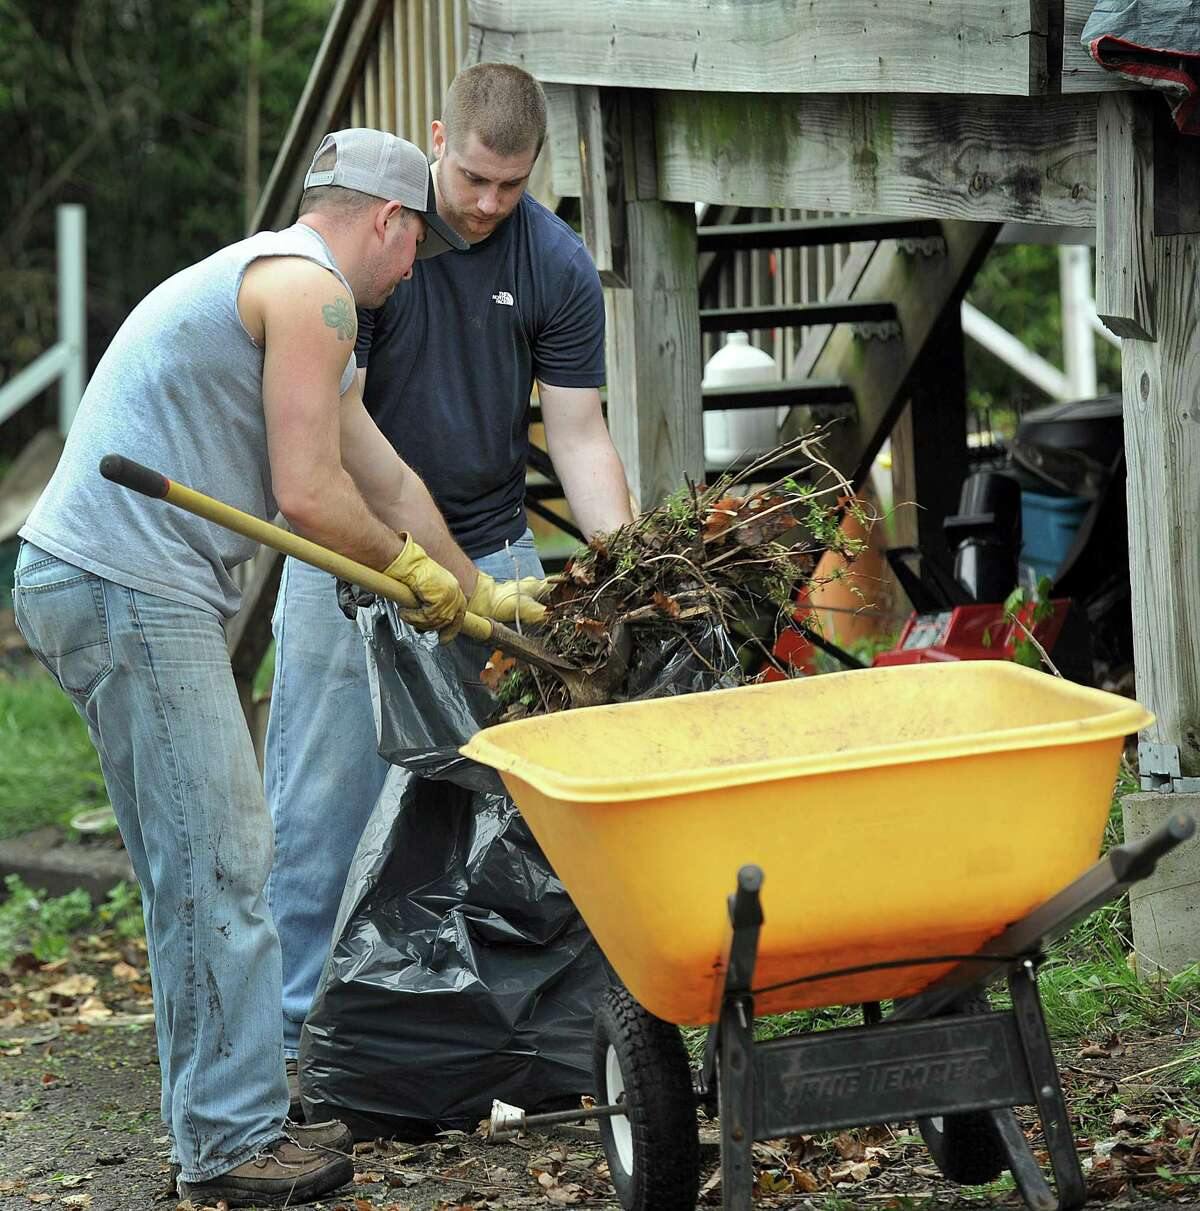 Ryan Howley, 31, left, and Chris Dennis, 26, both Danbury Police officers, volunteer to clean up the outside of Heidi Palmer's Danbury home Thursday, April 27, 2017. Dennis was required to take counseling and remedial training following an internal investigation of an June 2021 incident at Danbury Library.